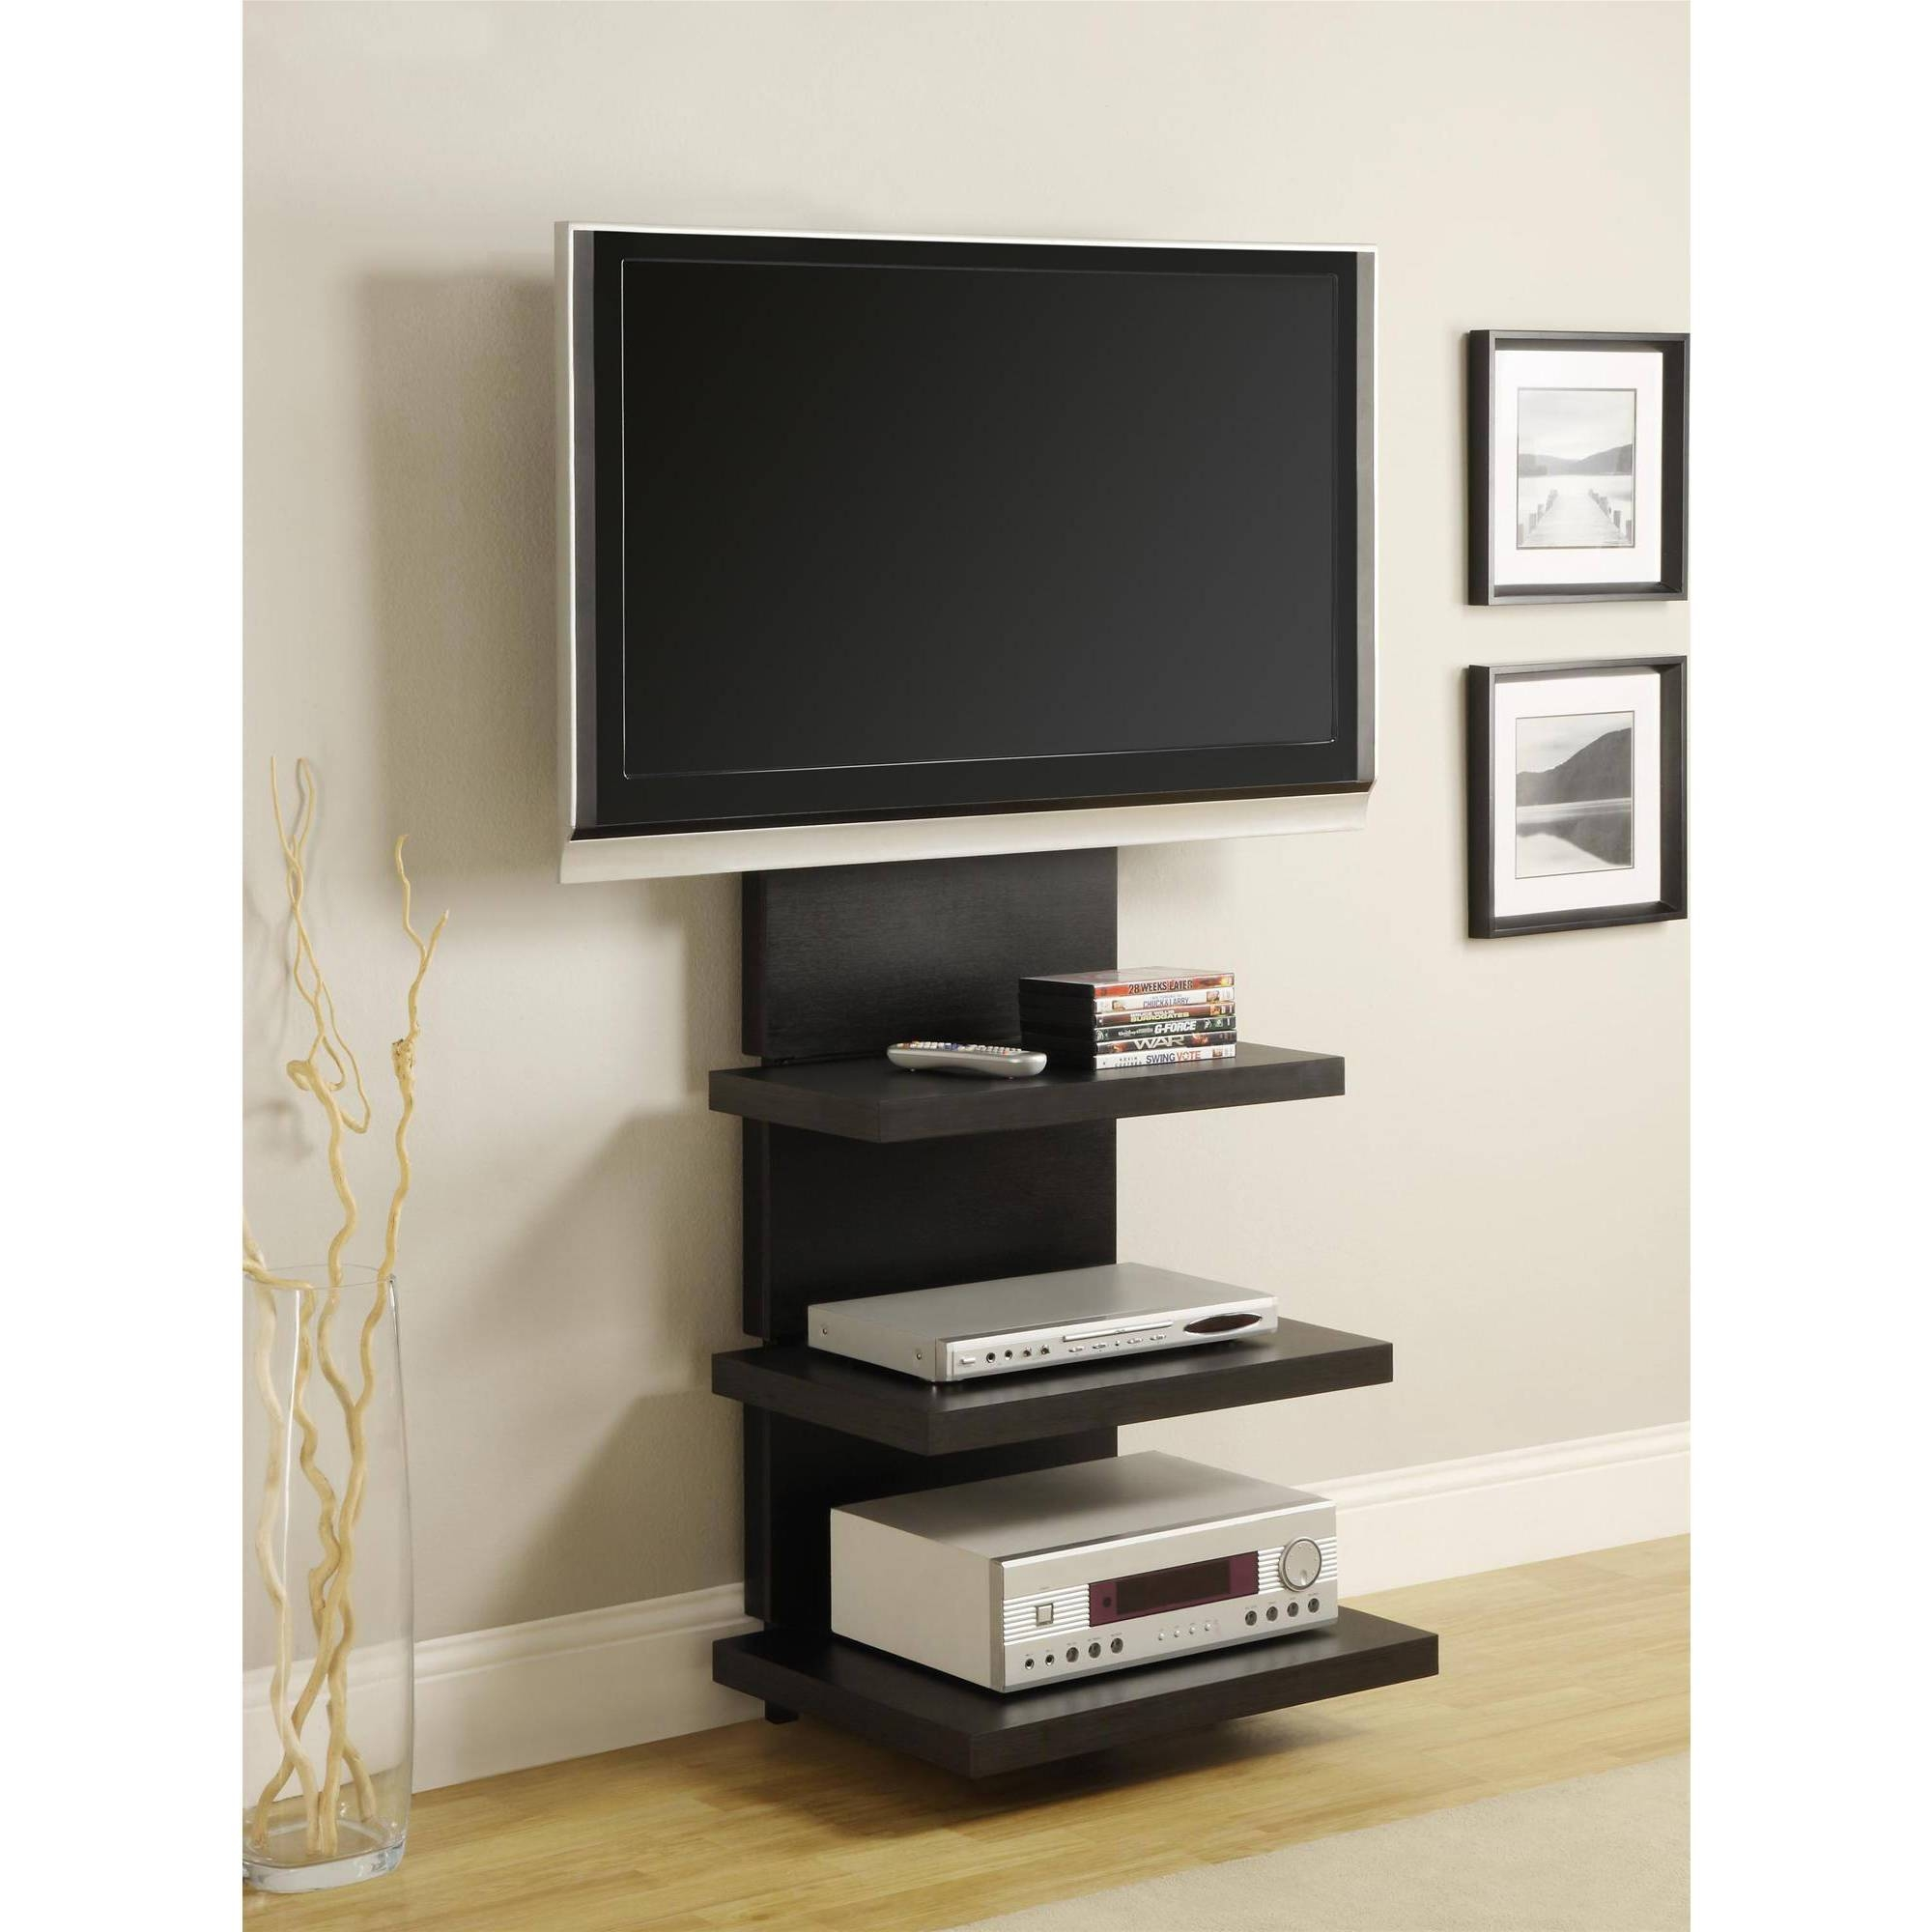 55 Tv Stand With Mount pertaining to Tv Stands Swivel Mount (Image 1 of 15)